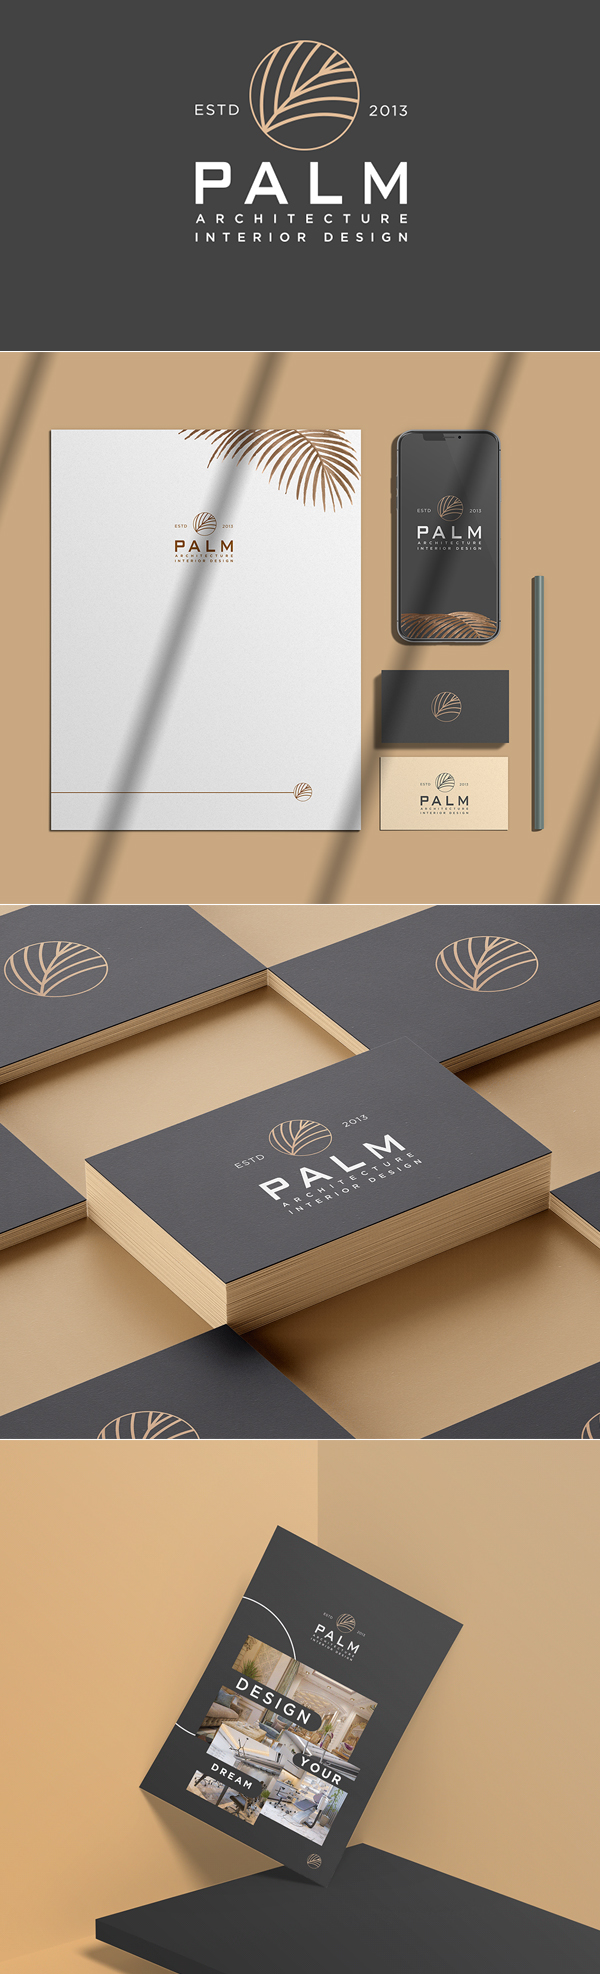 Palm Interior Design Branding by Abdelrahman Khaled